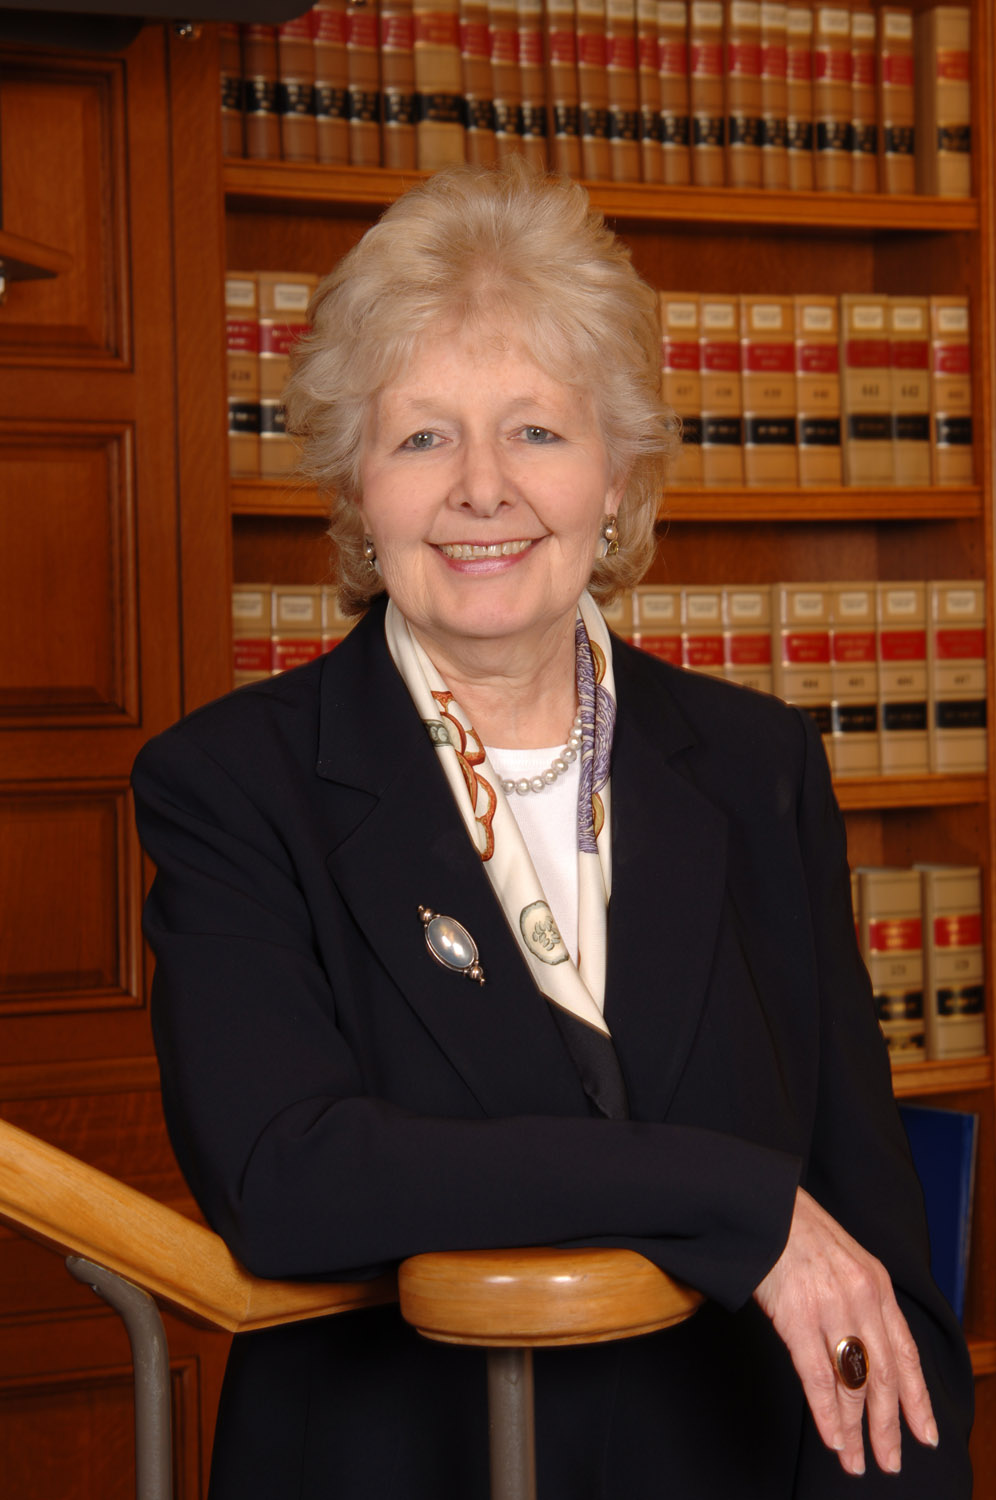 female executive in law library setting